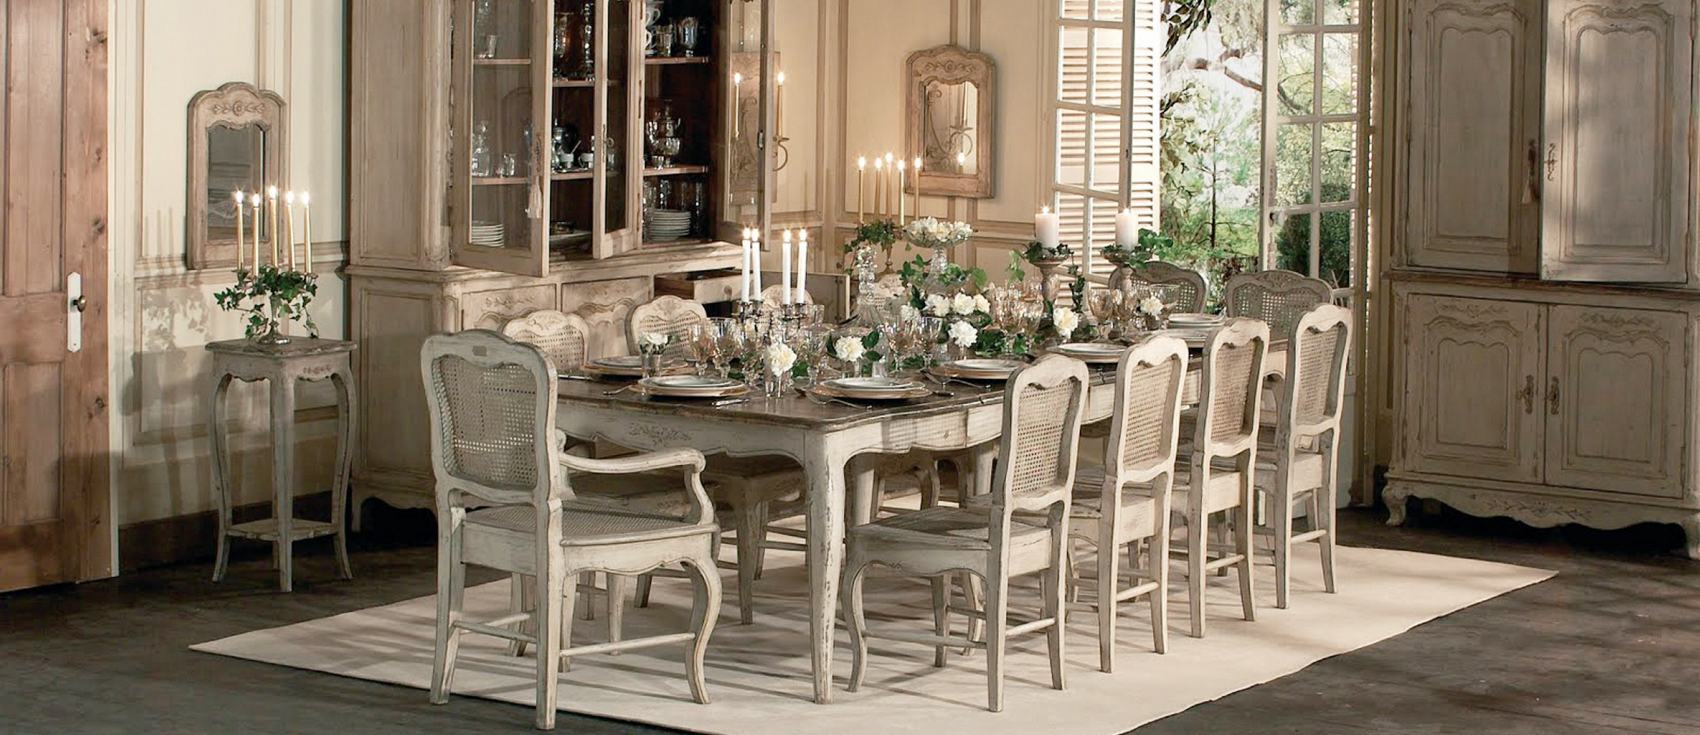 French Country Decor u0026 French Country Decorating Ideas